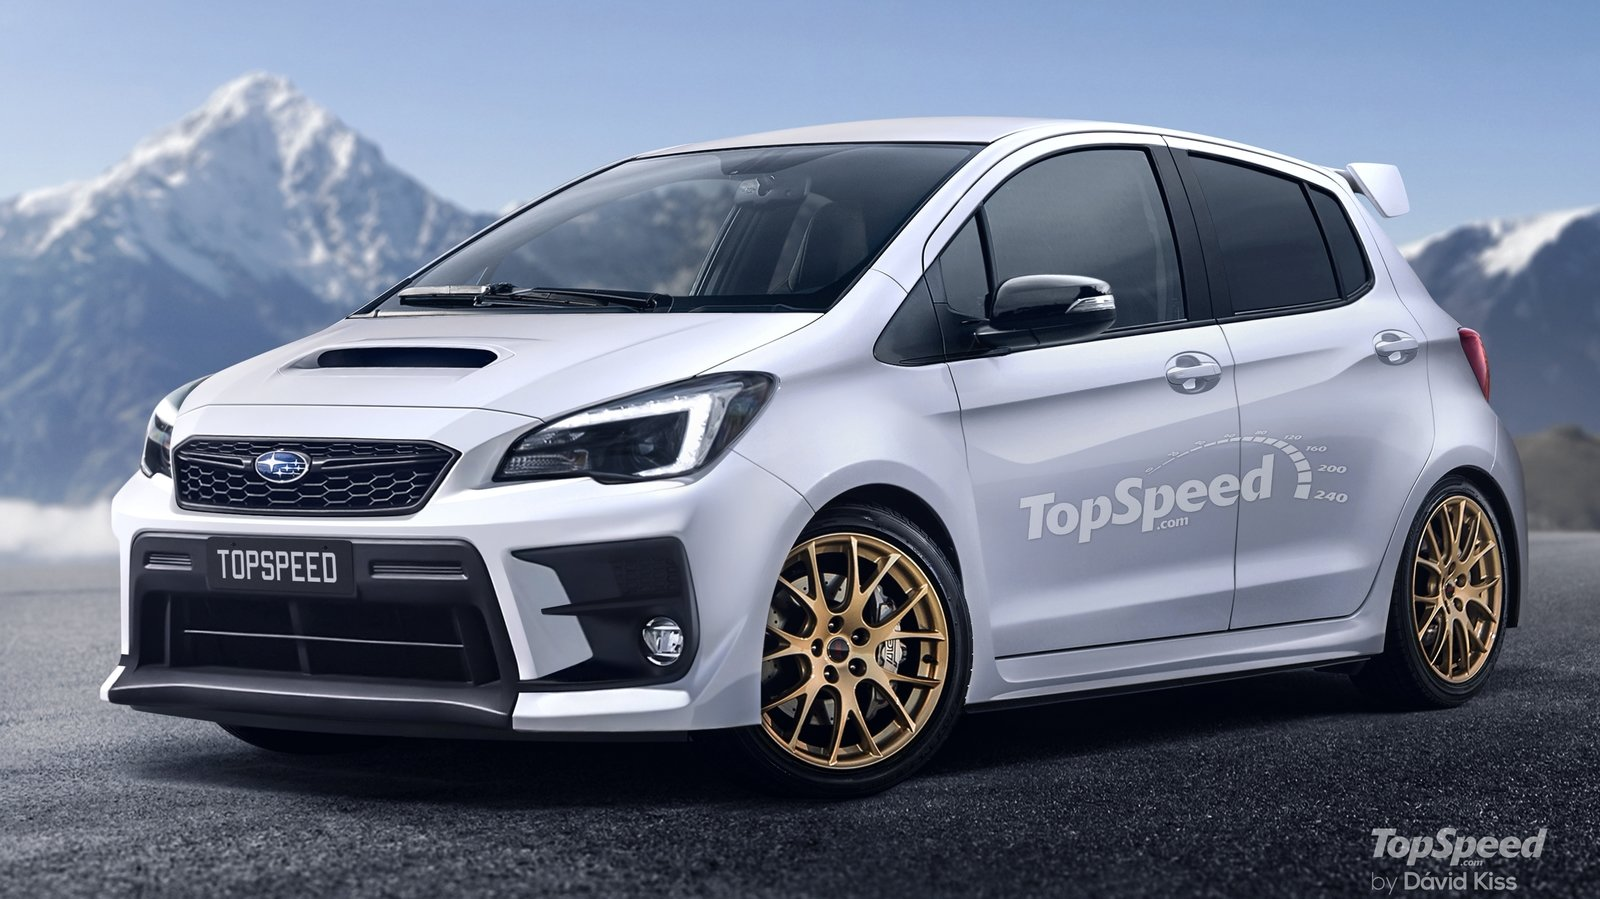 2021 Subaru Hot Hatchback Top Speed